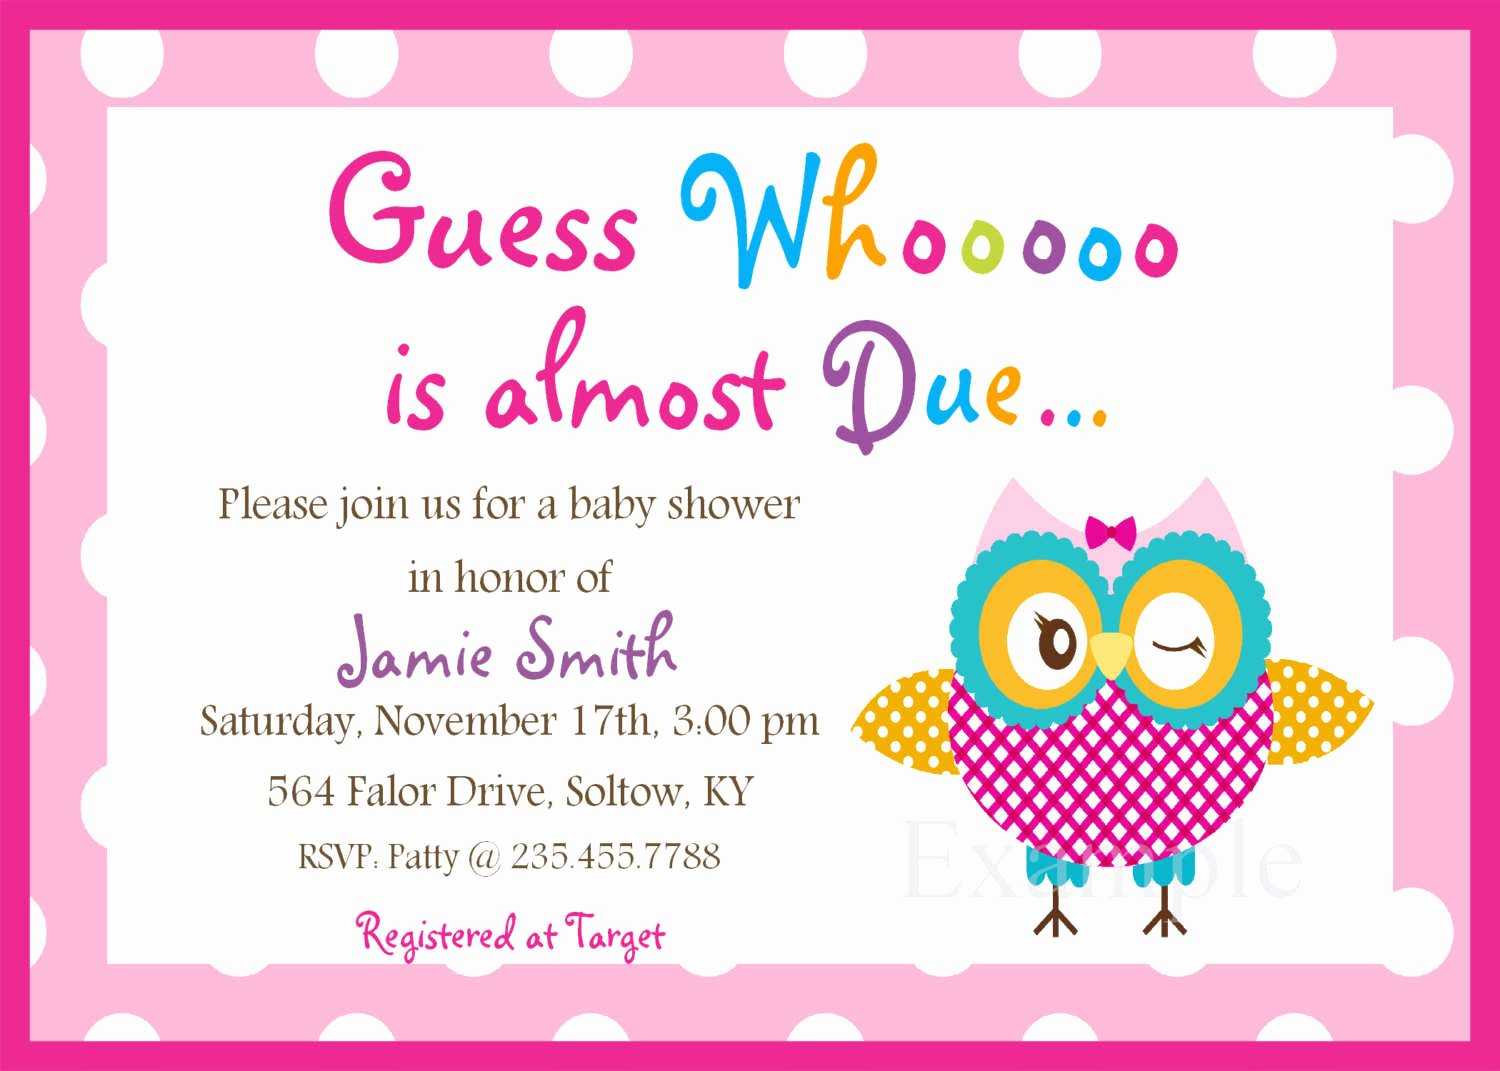 Free Baby Shower Invitation Templates Best Of Free Baby Shower Invitation Templates Downloads